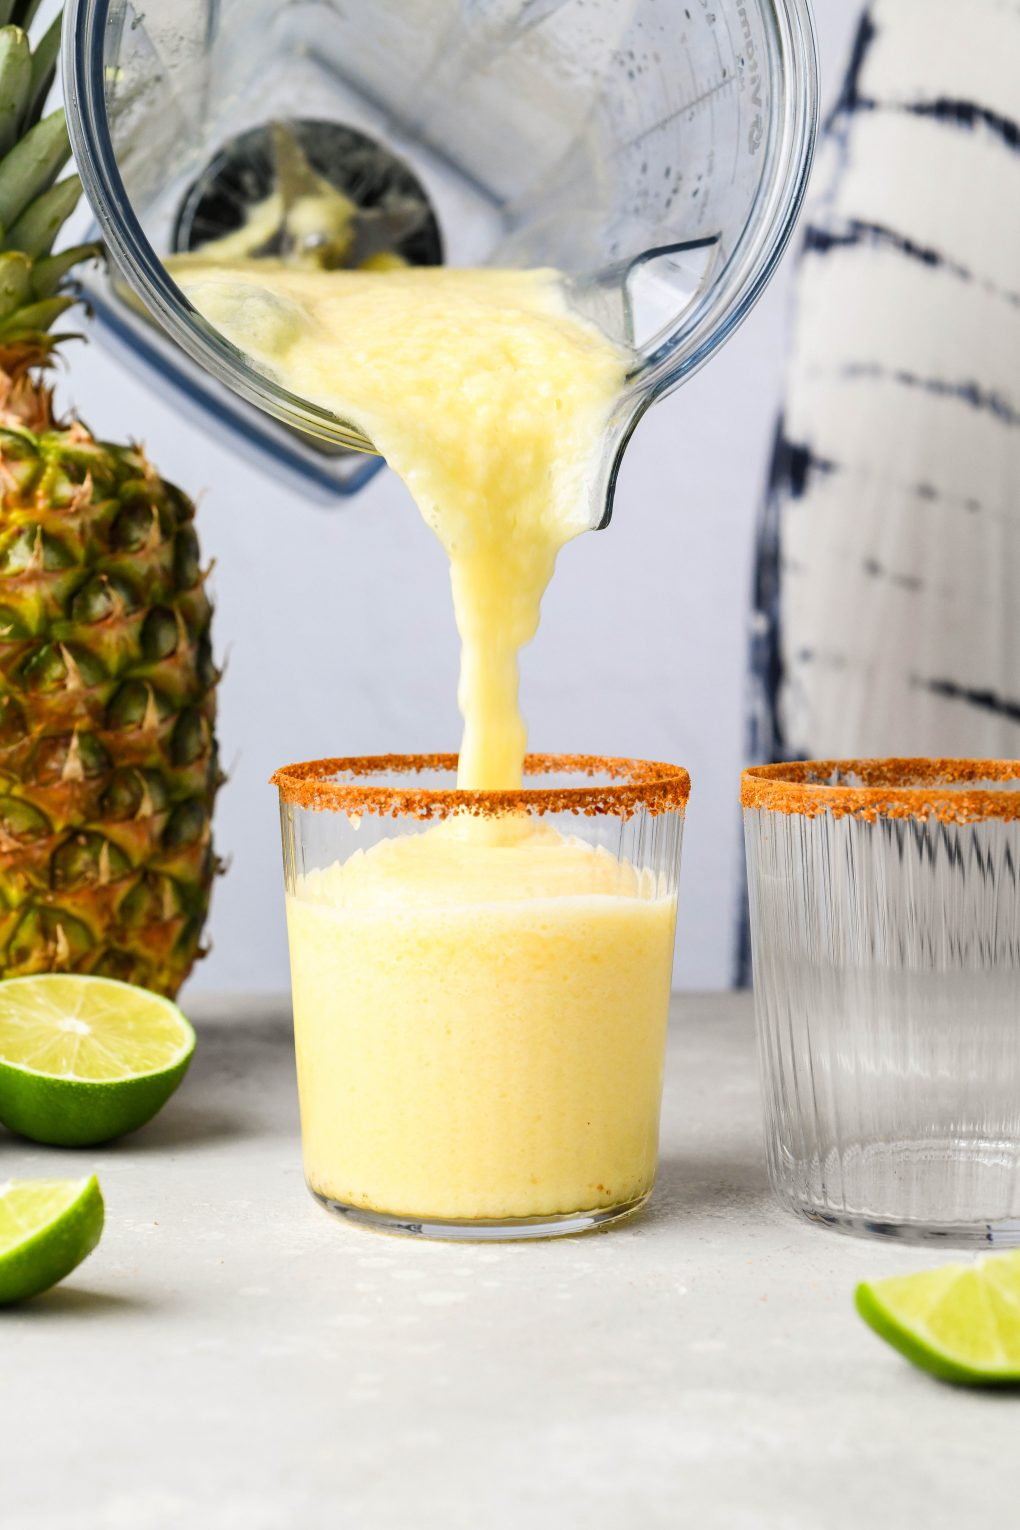 Blender container pouring frozen pineapple margarita into a chili salt rimmed glass. On a light background next to a pineapple and some cut lime wedges.